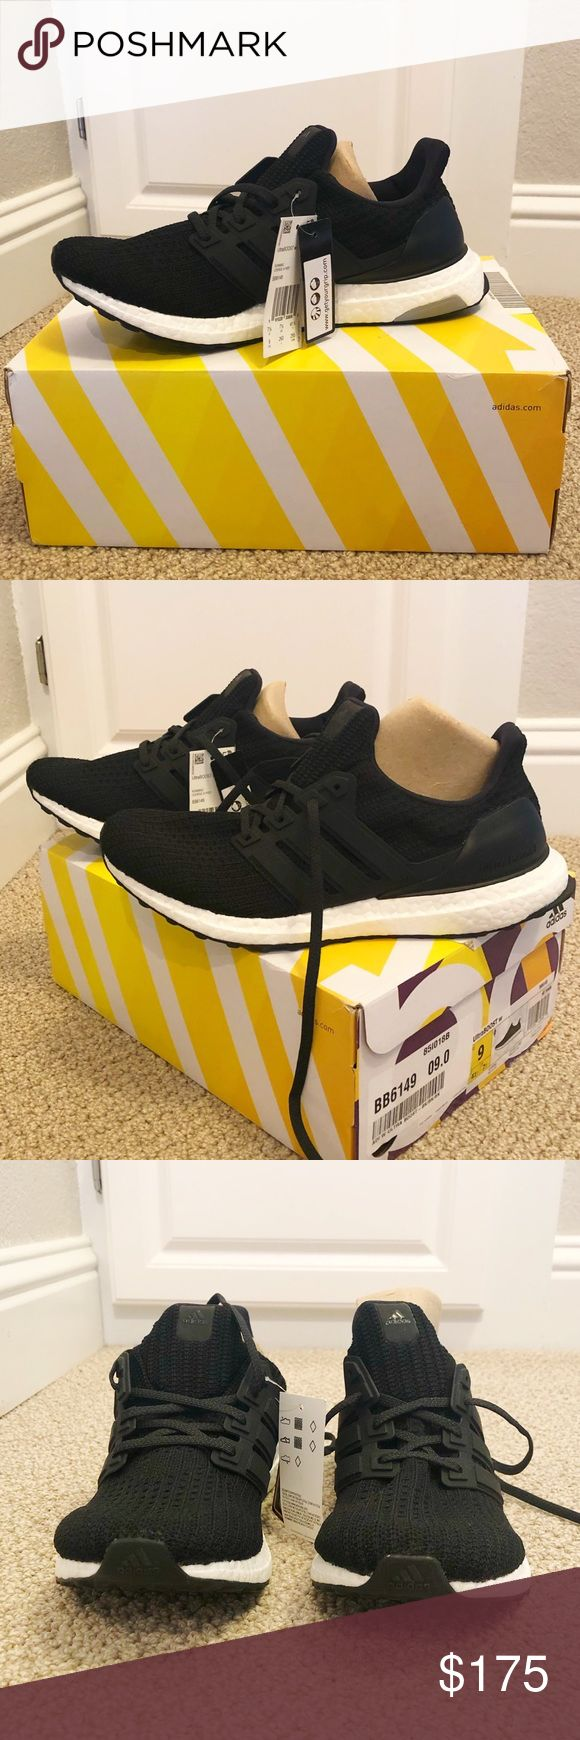 Adidas UltraBoost (9) Brand new pair of Women's Adidas UltraBoost shoes!   $195 w/ tax! adidas Shoes Athletic Shoes